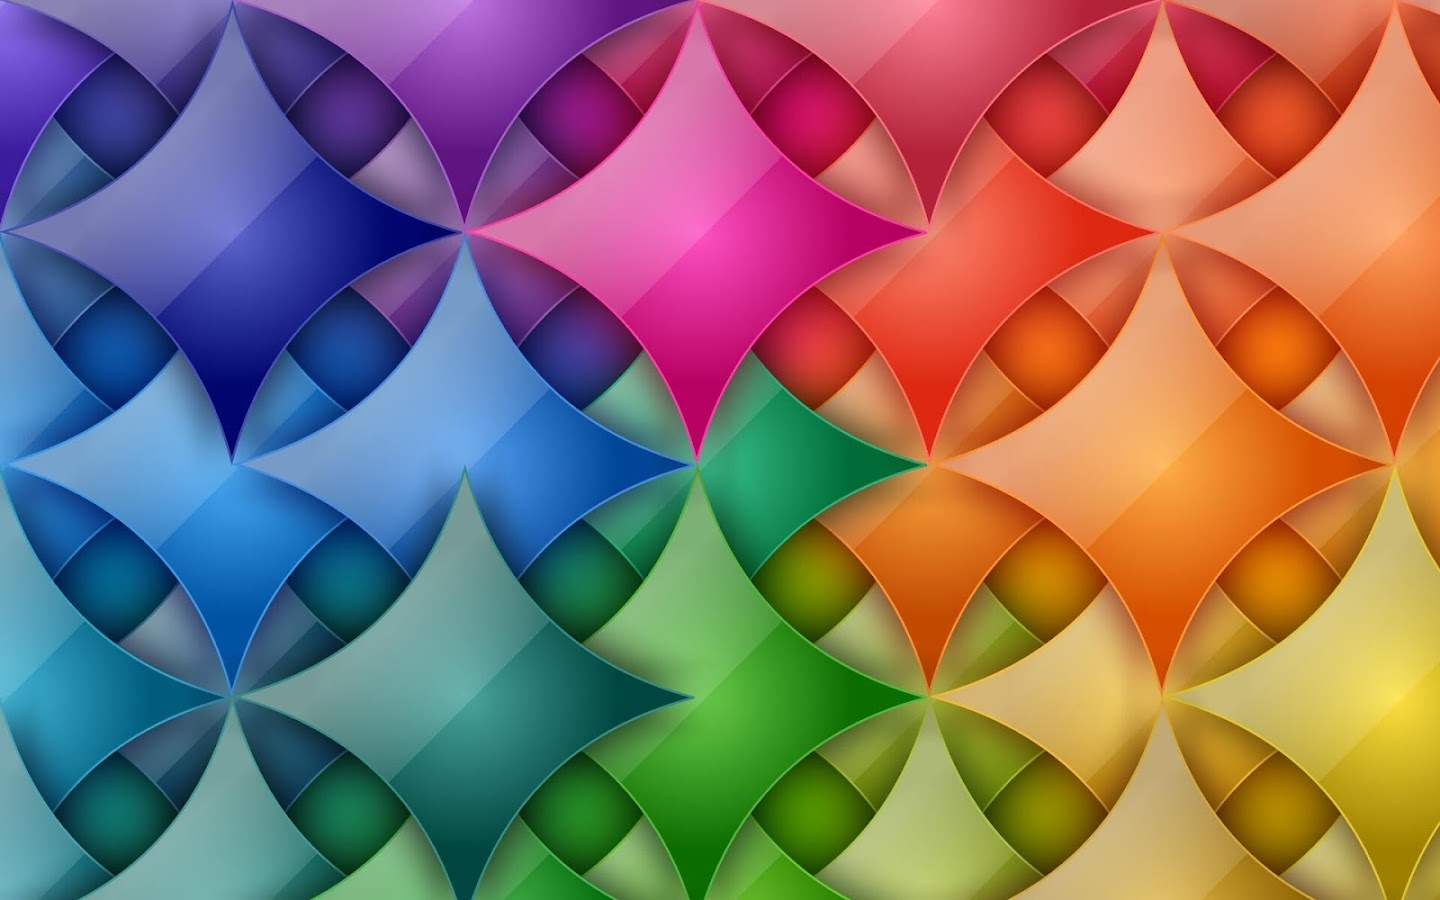 The Wallpaper Designer Android Apps on Google Play